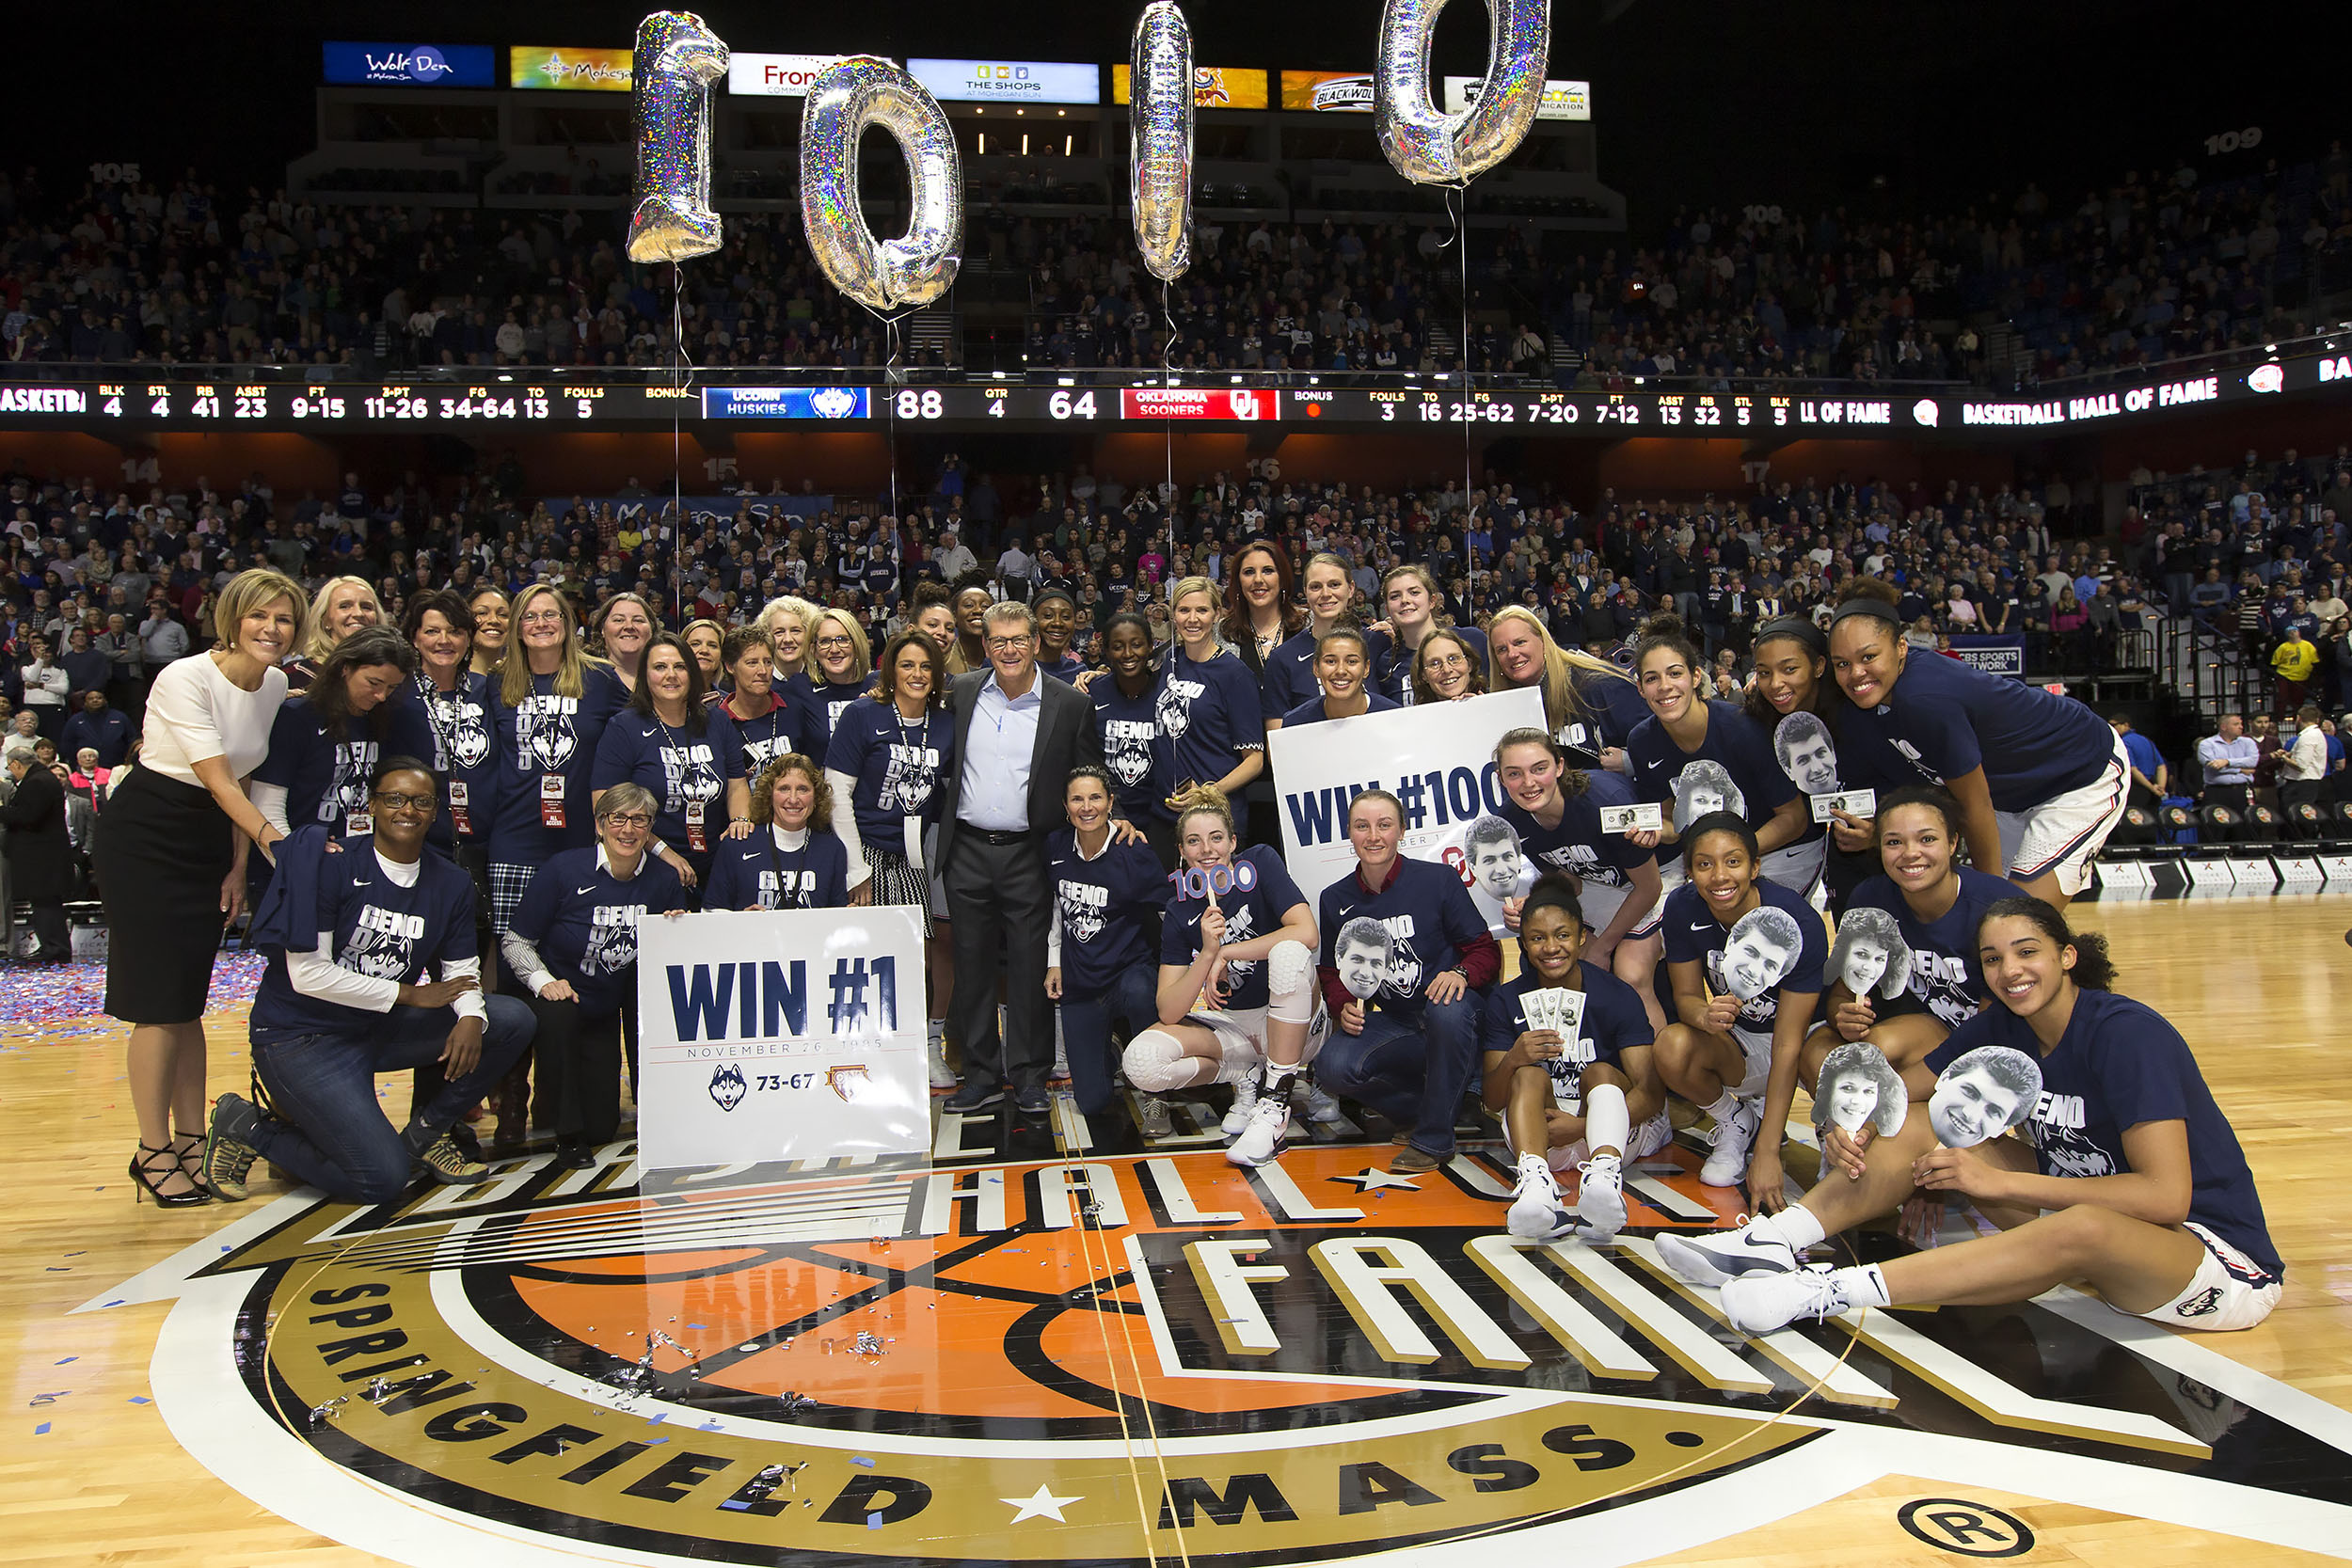 Members of the women's basketball team past and present celebrate the 1,000th win for Geno Auriemma and Chris Dailey at the Mohegan Sun Arena on Dec. 19, 2017